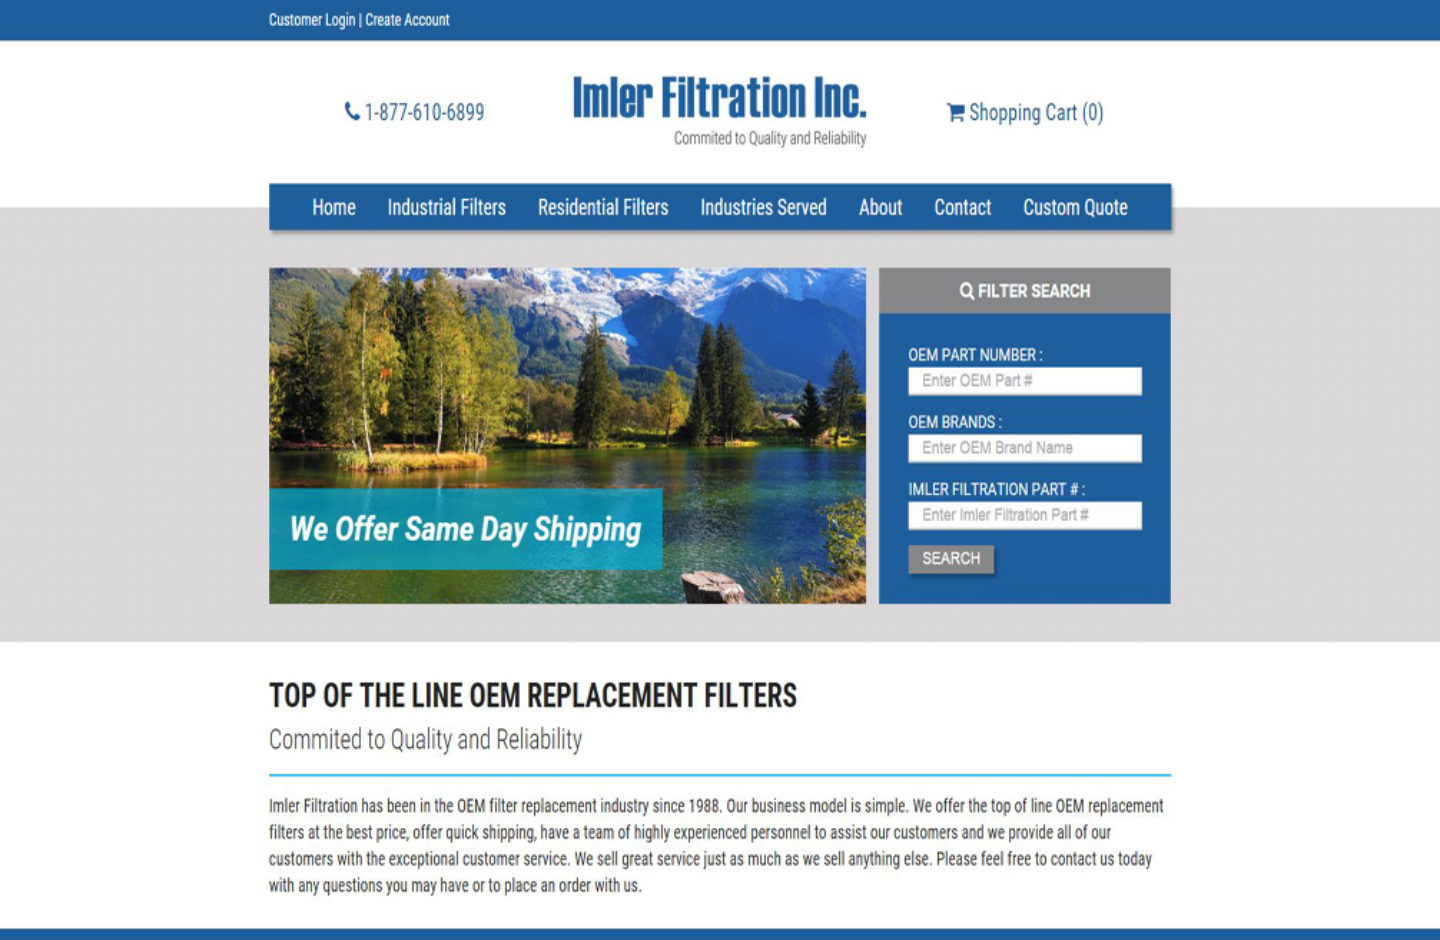 Imler Filtration Inc